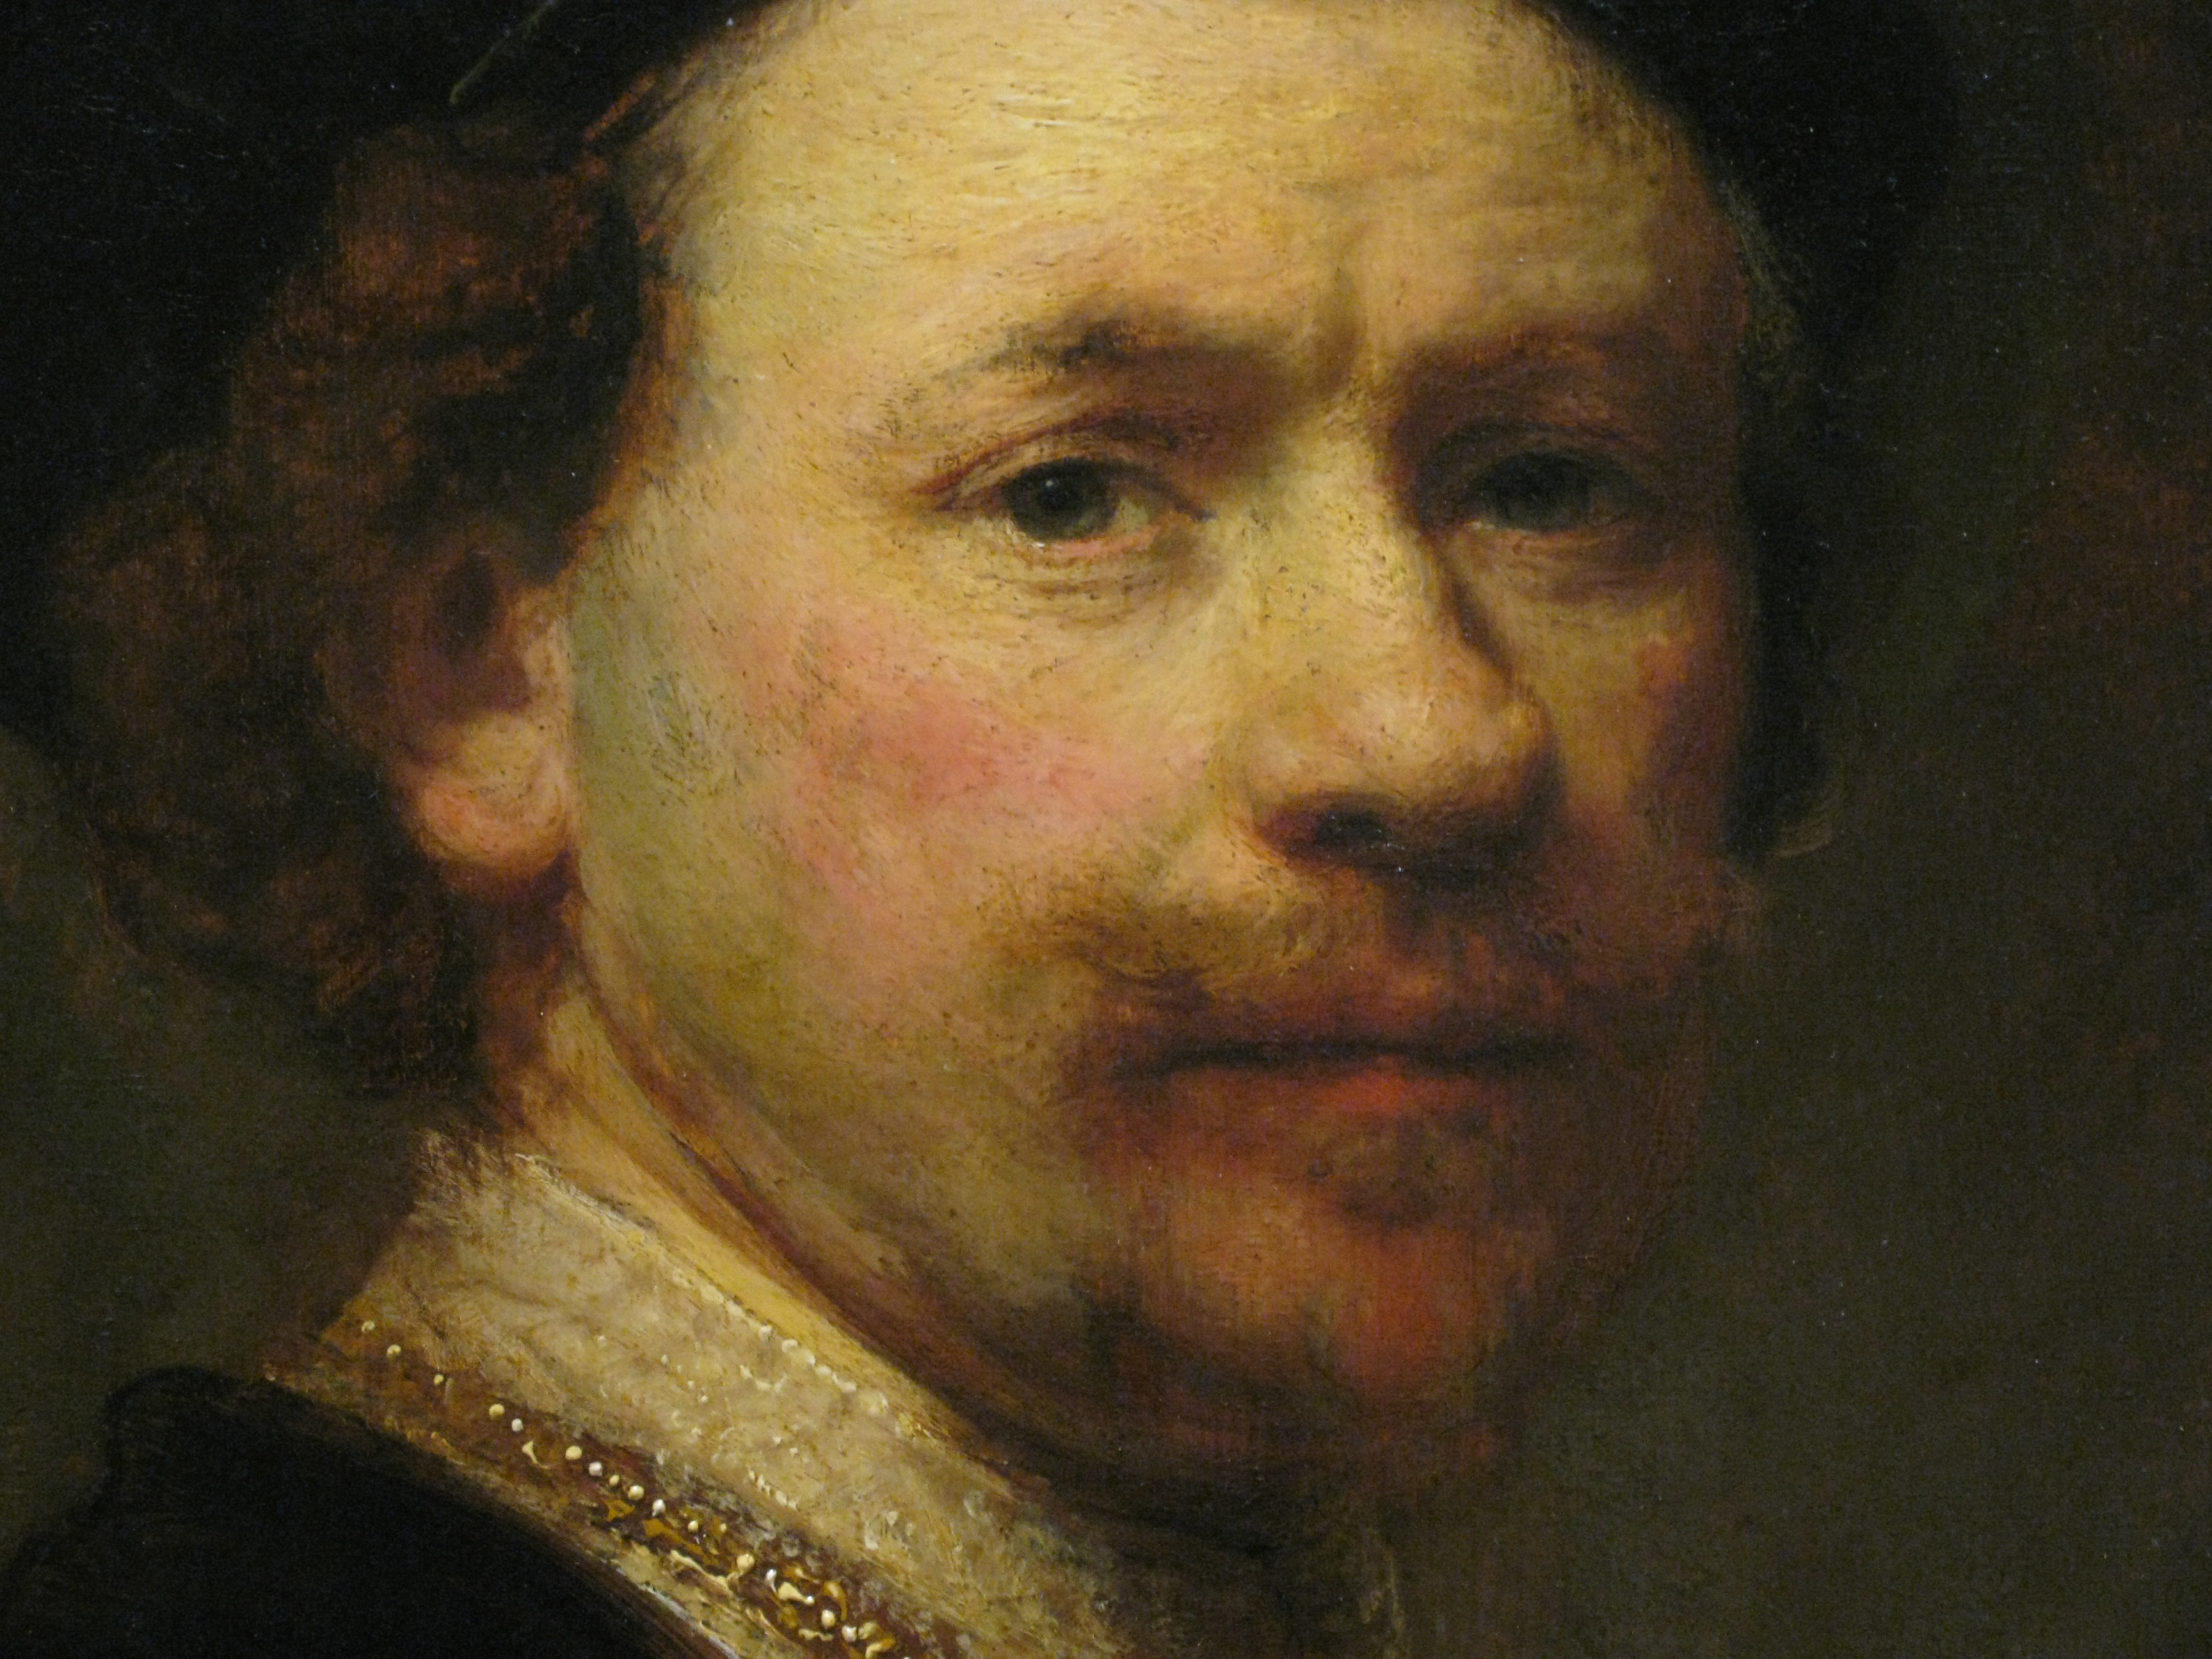 rembrandt HD Wallpaper